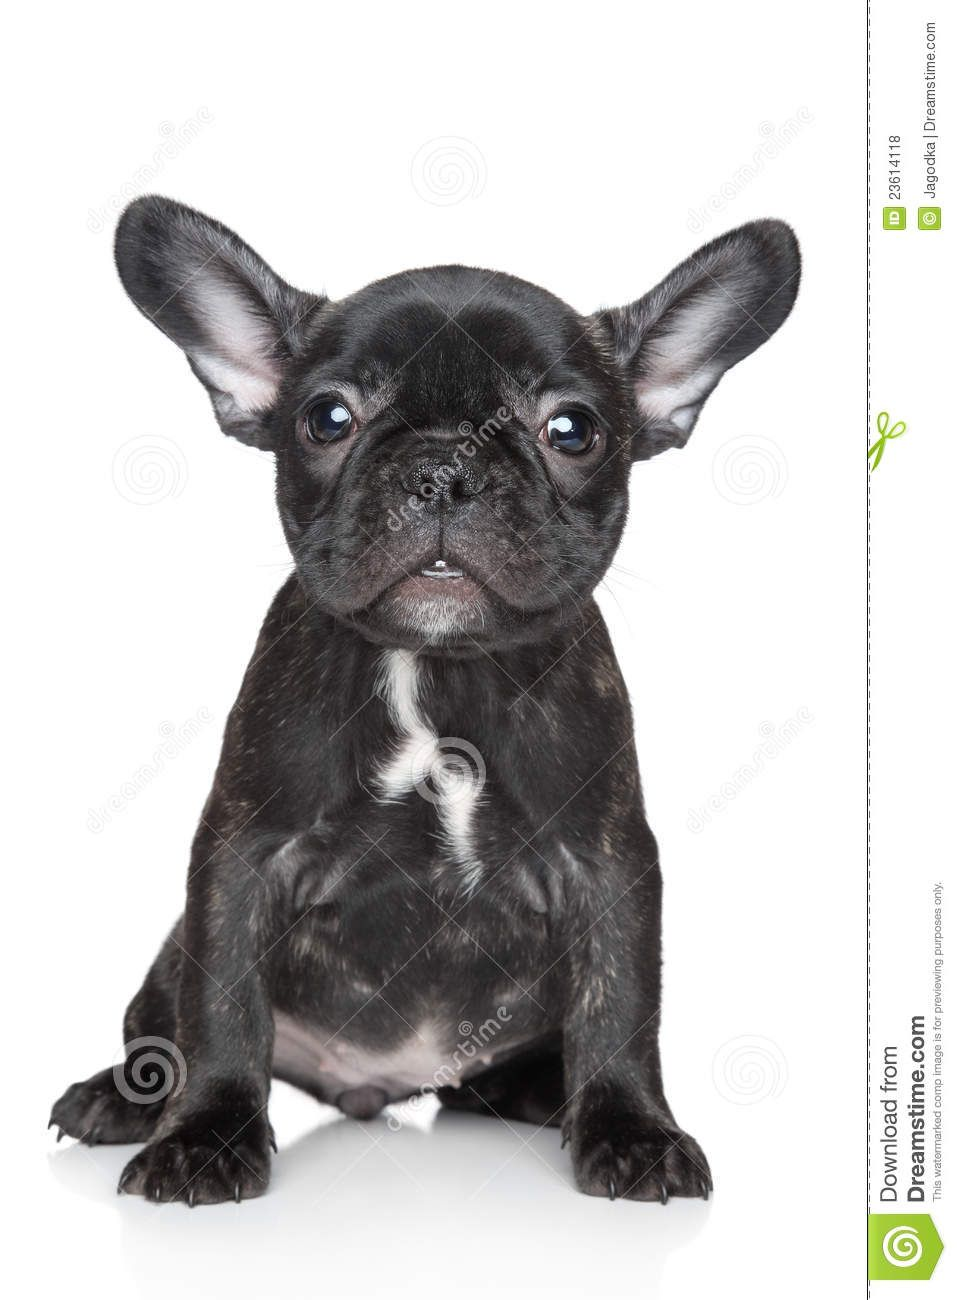 French Bulldog Puppy Sits On A White Background French Bulldog Puppy Black Bulldog Puppies French Bulldog Puppies